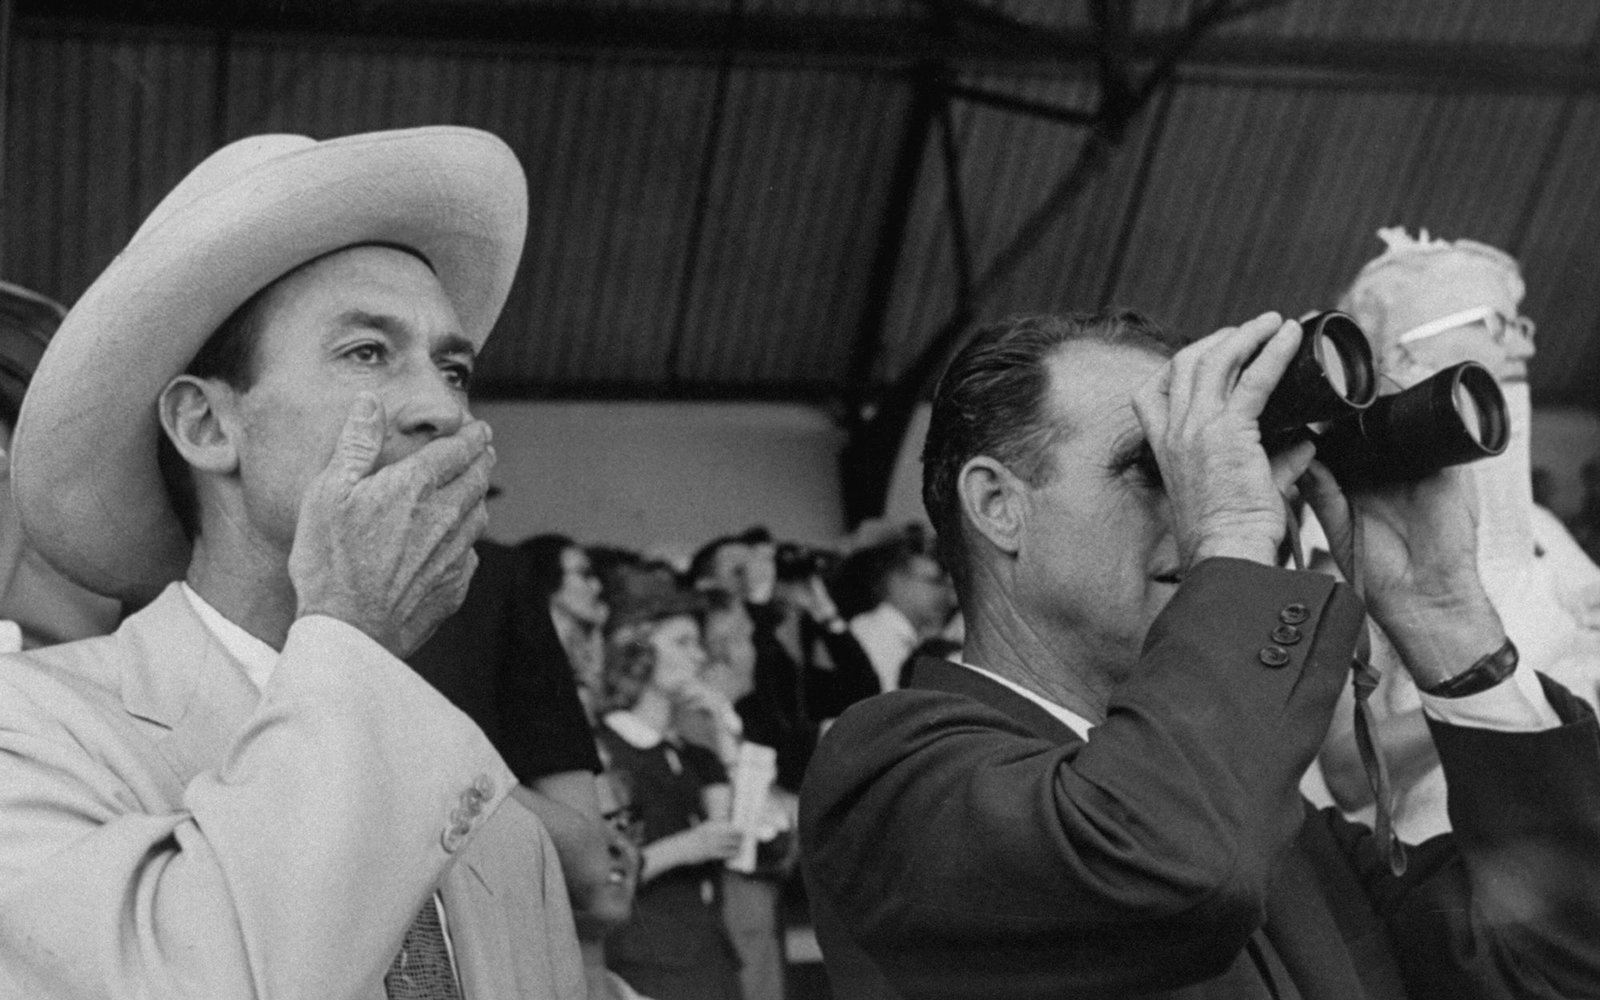 Kentucky Derby 1956